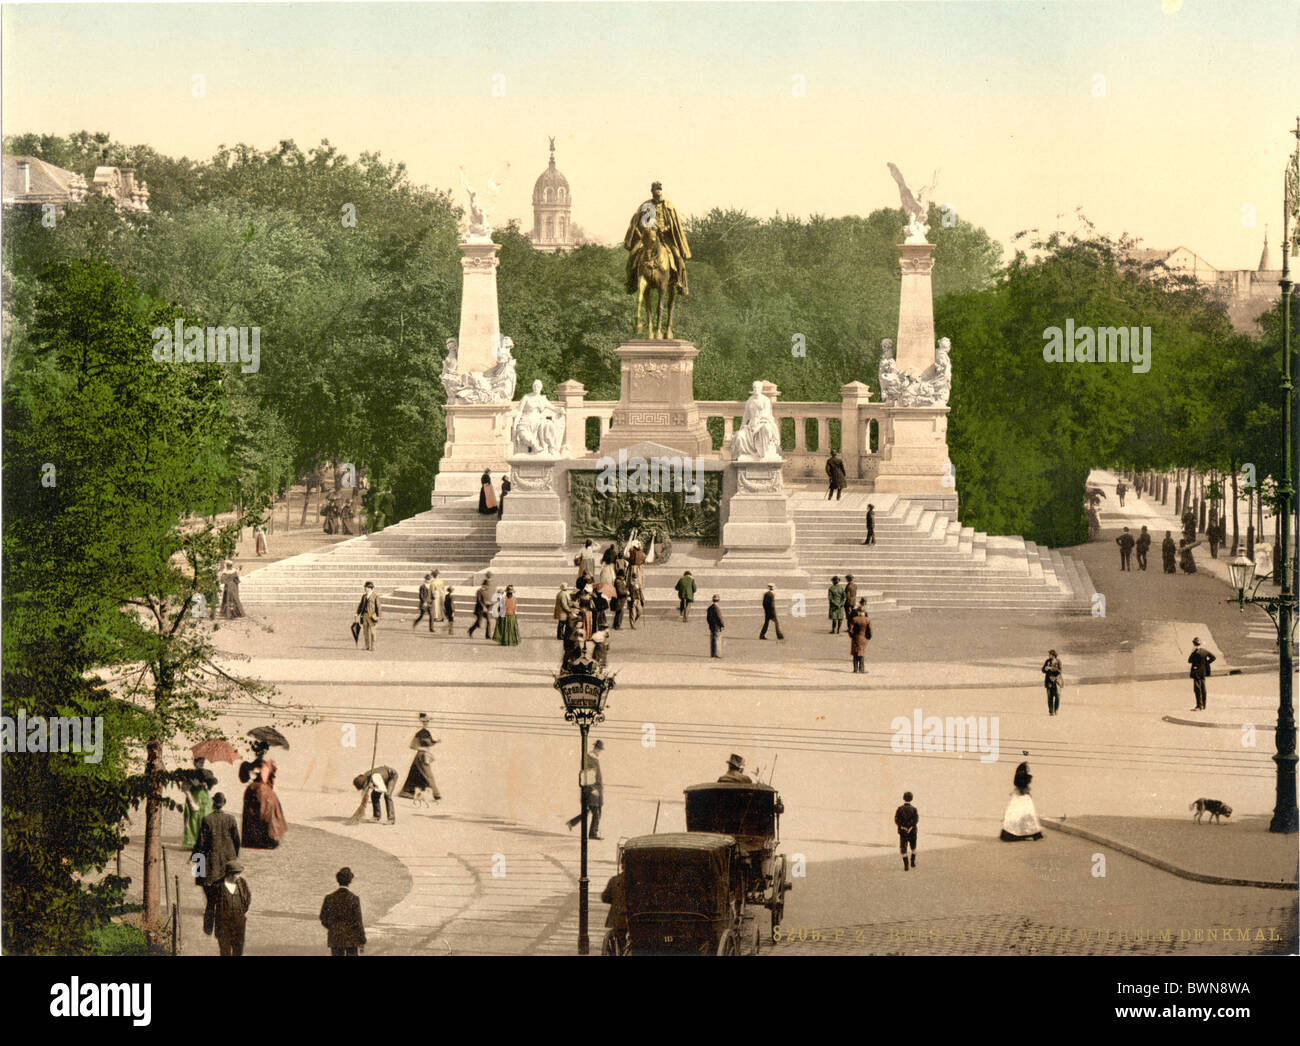 Emperor William I Memorial Breslau Silesia formerly Germany Europe German Empire Poland Photochrom about 1900 - Stock Image